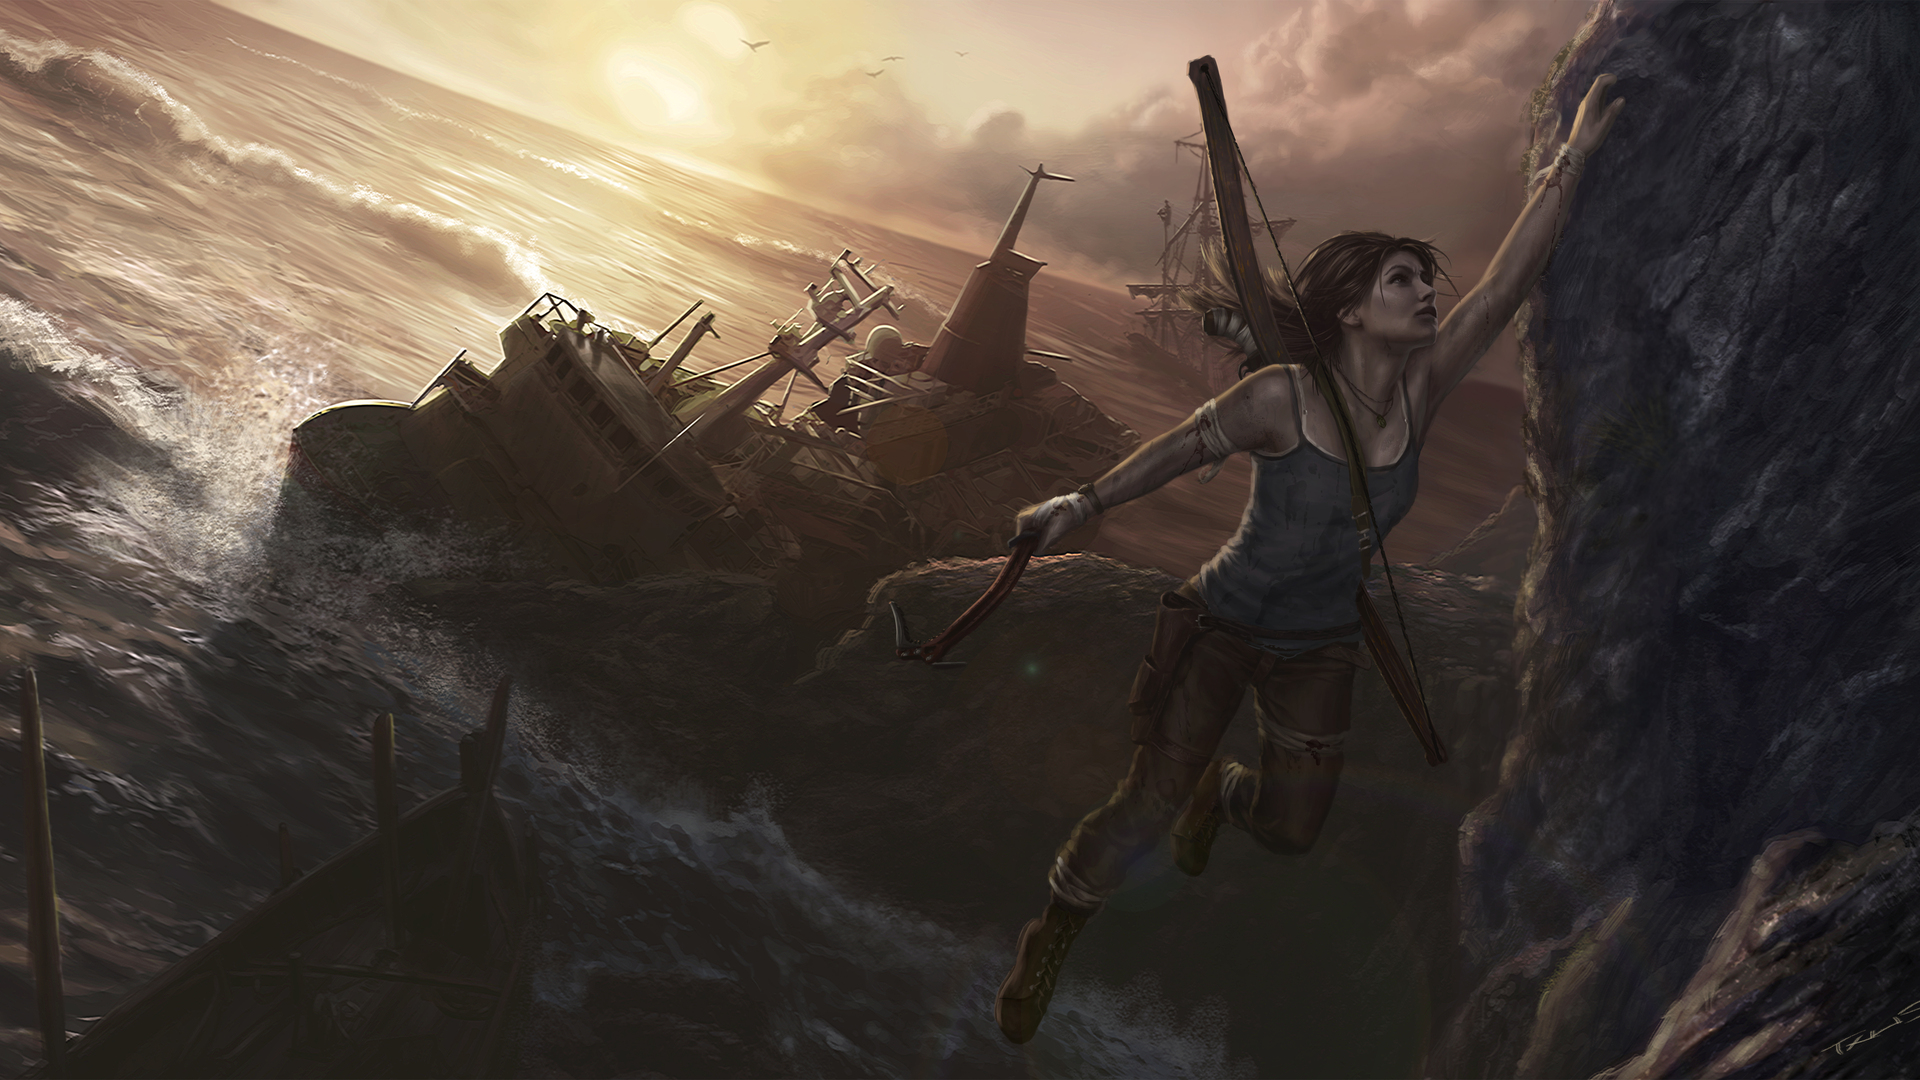 1920x1080 Tomb Raider 5k Artwork Laptop Full Hd 1080p Hd 4k